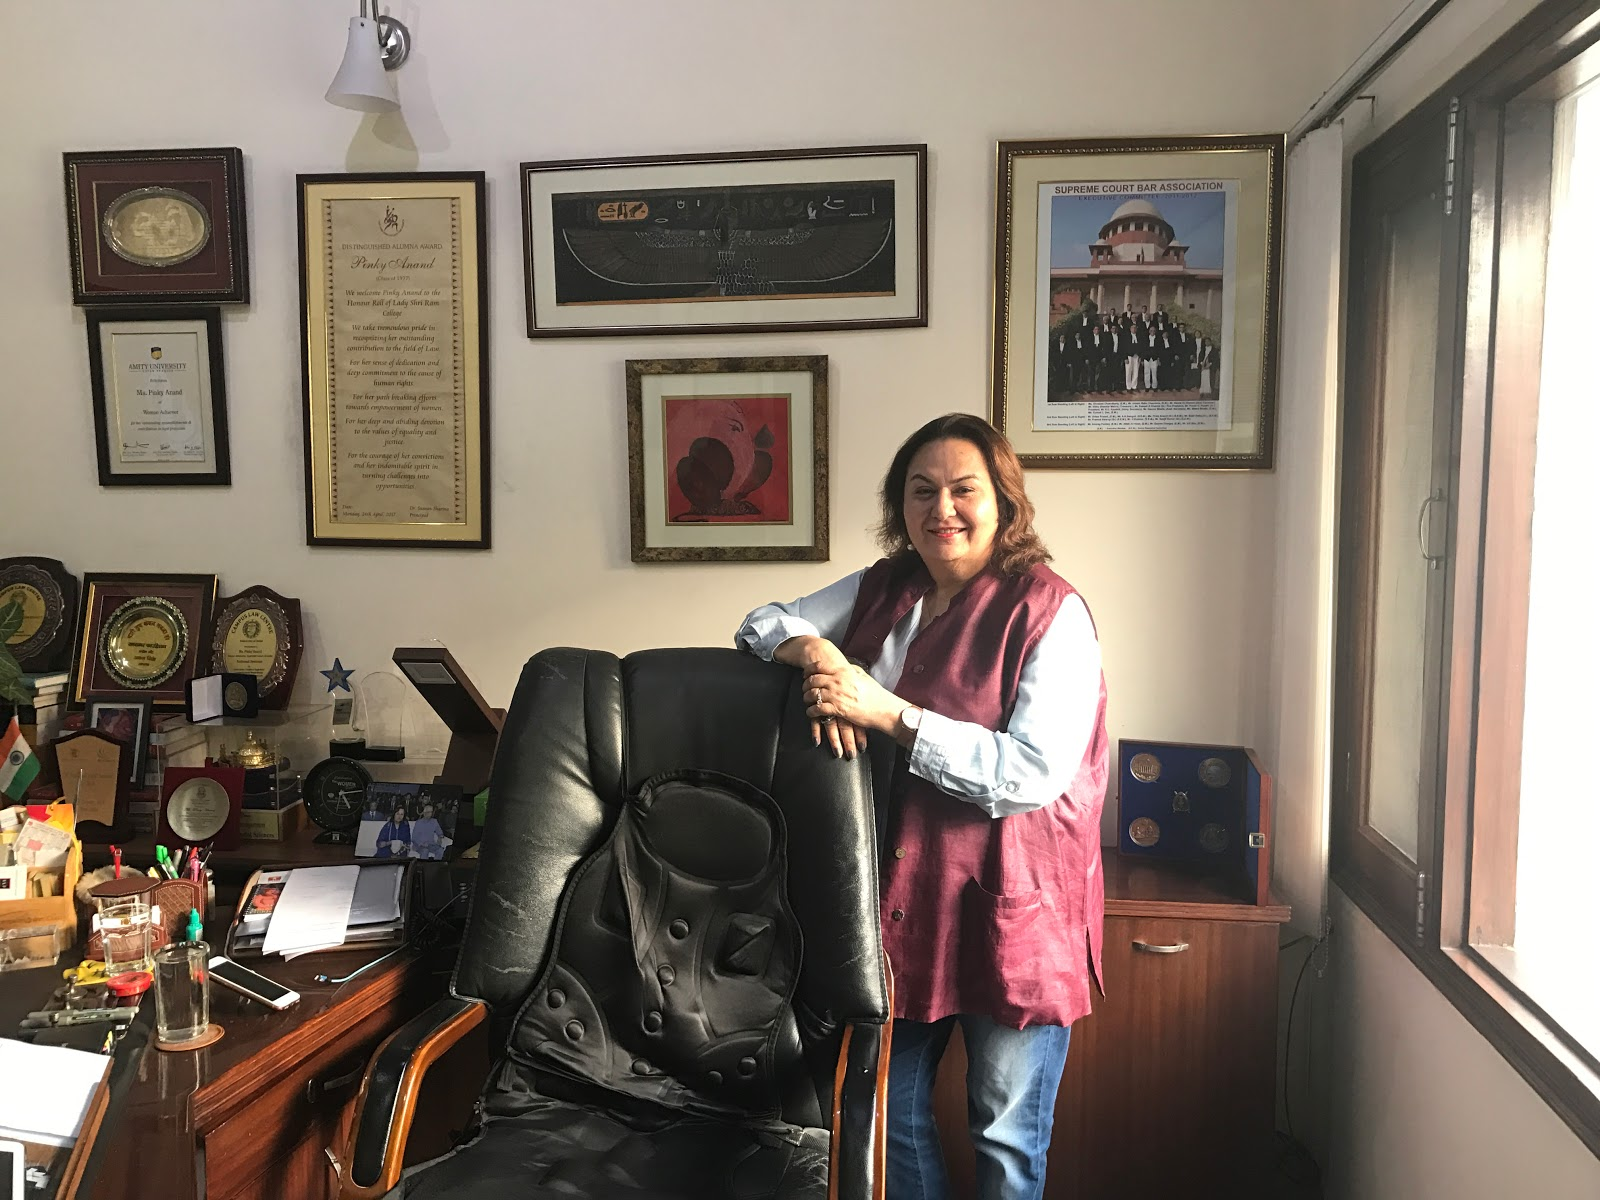 INTERVIEW: Pinky Anand on Harvard, Inlaks, Trial Courts and Success [By Manushi Desai]